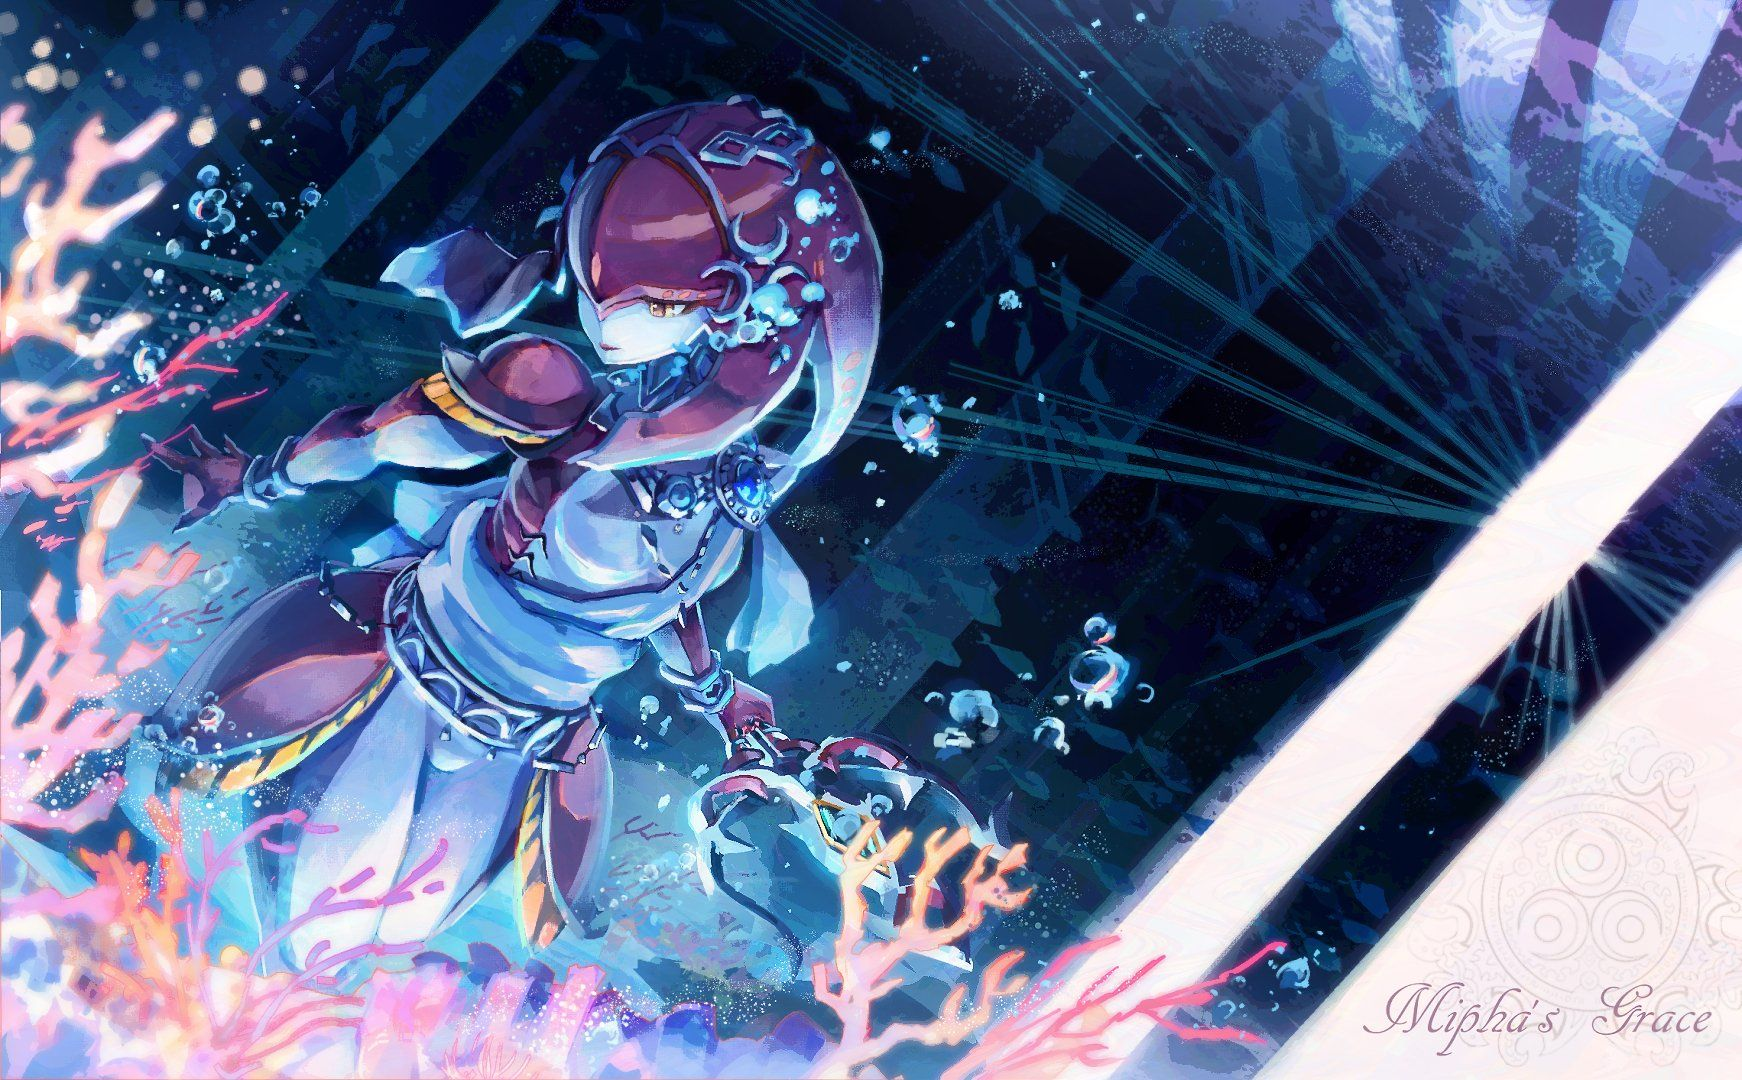 Video Game The Legend Of Zelda Breath Of The Wild Mipha The Legend Of Zelda Wallpaper Legend Of Zelda Legend Of Zelda Breath Breath Of The Wild